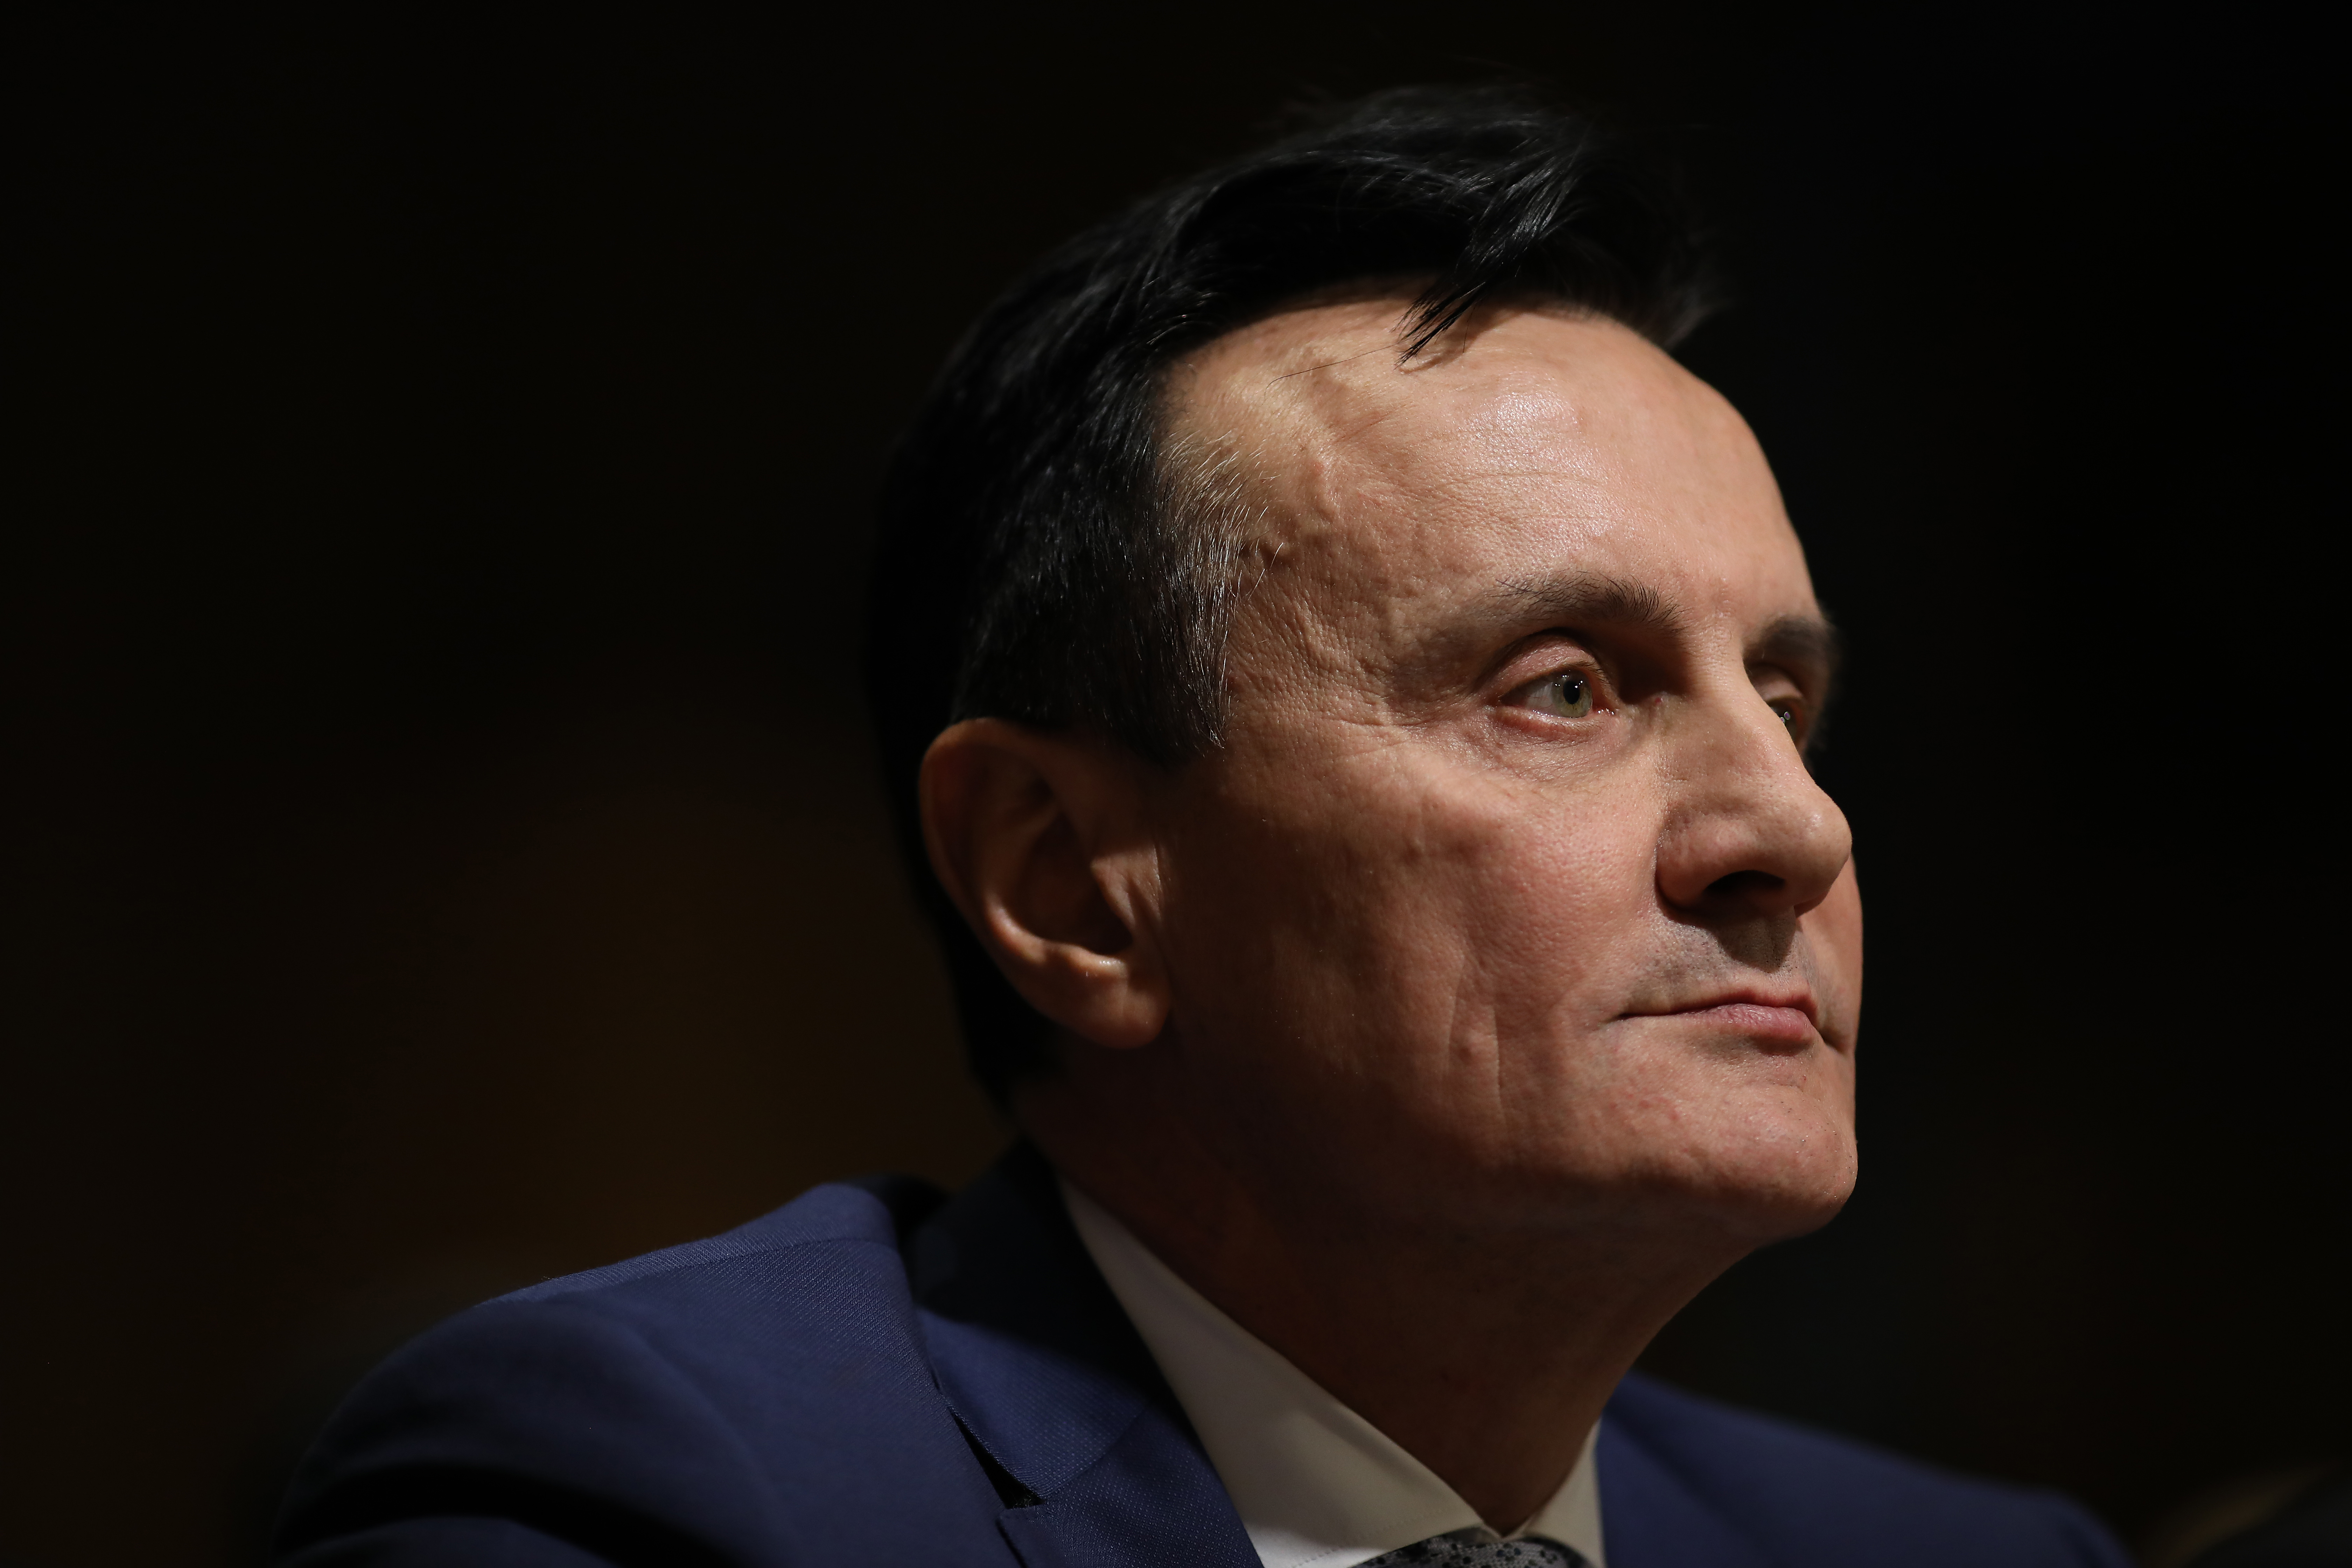 Astrazeneca Ceo Says Participant Had Neurological Symptoms Could Be Discharged Today